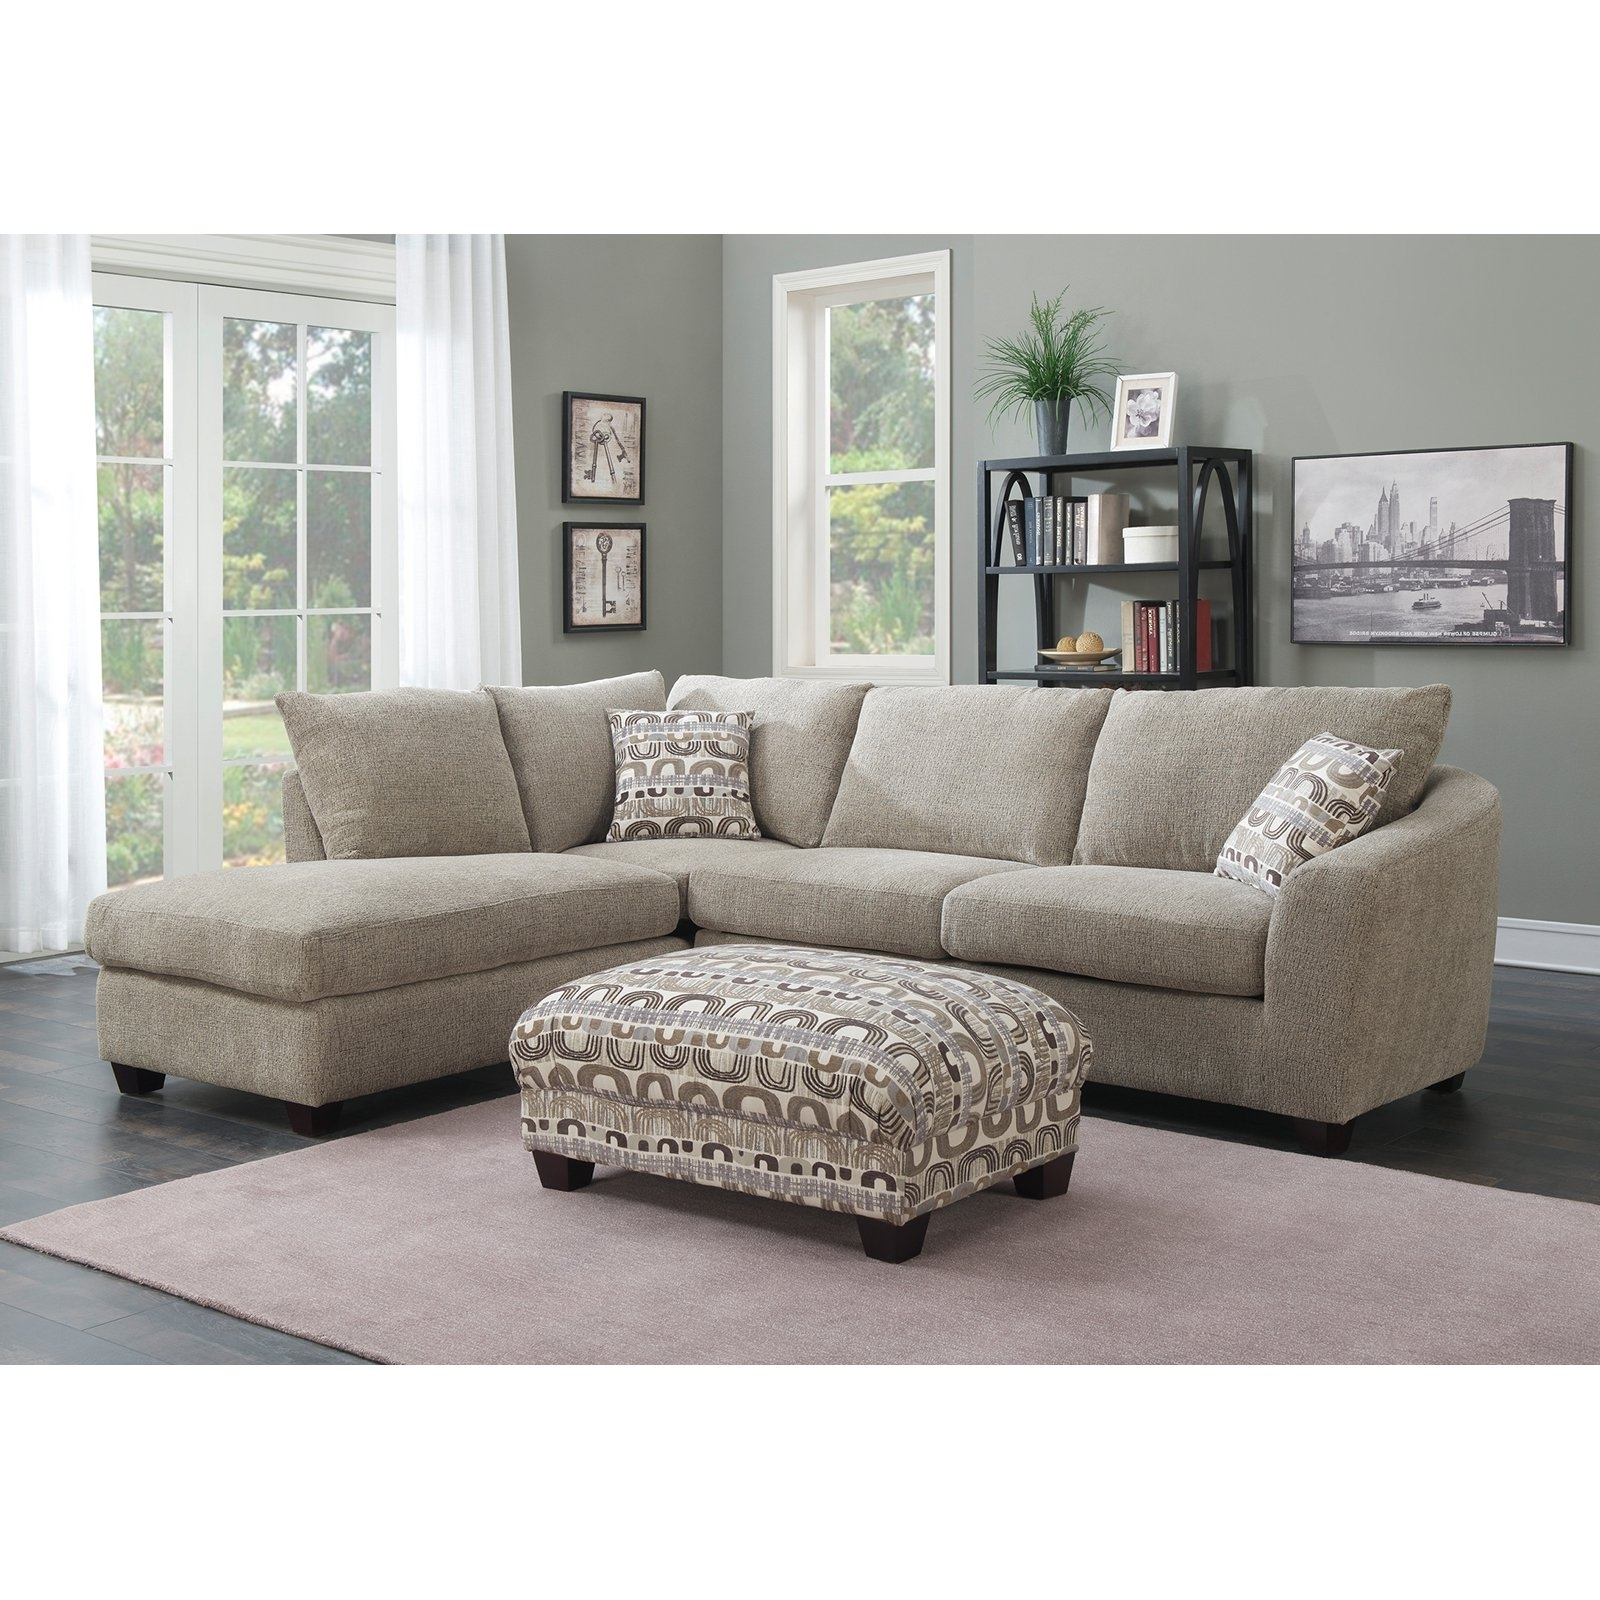 2 Piece Sectionals With Chaise With Favorite Emerald Home Urbana 2 Piece Sectional Sofa With Chaise – Walmart (View 4 of 15)